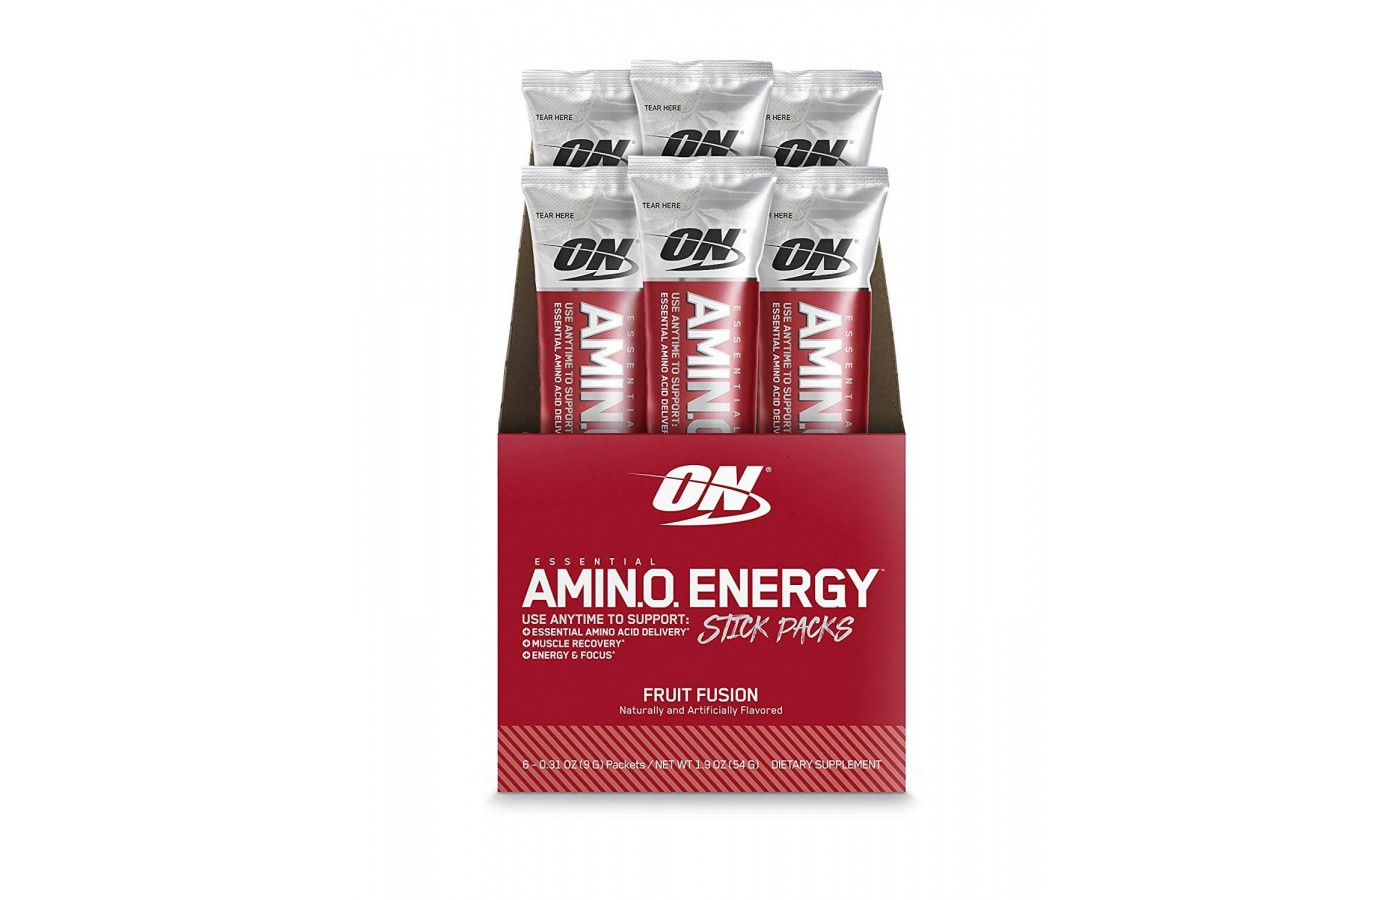 Amino Packs